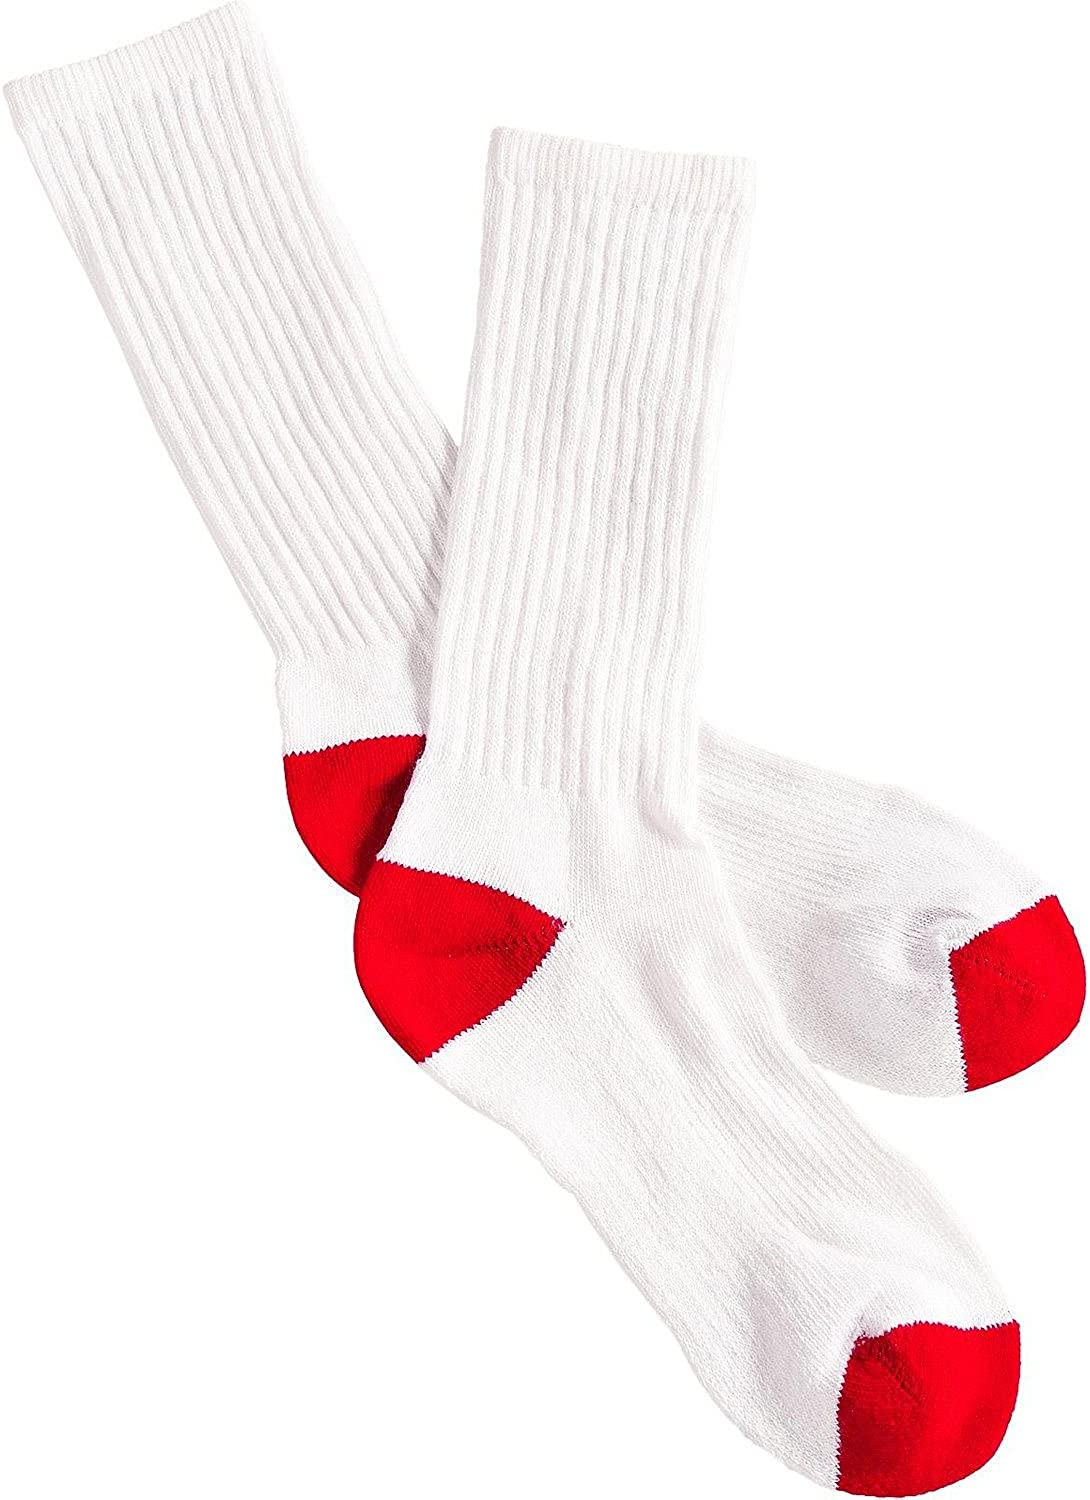 overseas Boot Doctor Boys' Over Max 53% OFF The Calf Socks Large Pack White 3